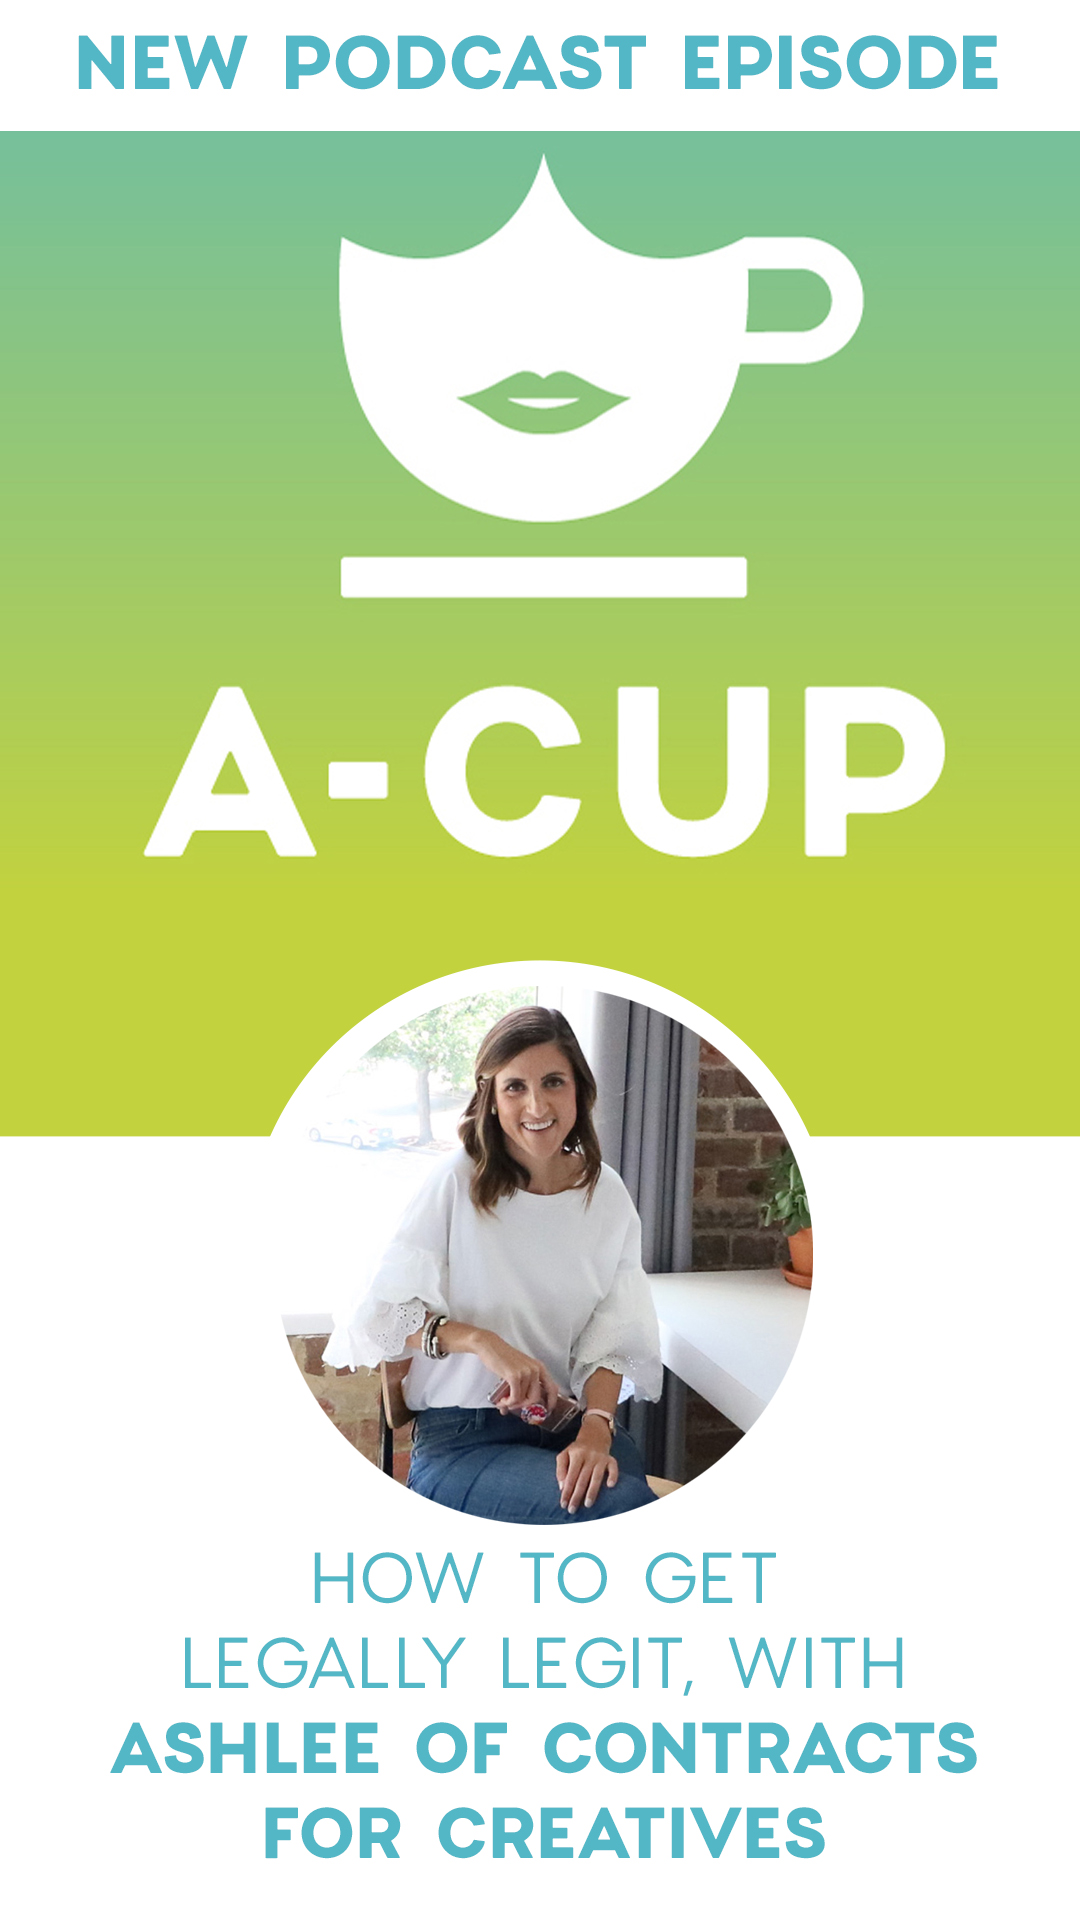 A-Cup Podcast | Contracts for Creatives | Ashlee Hightower